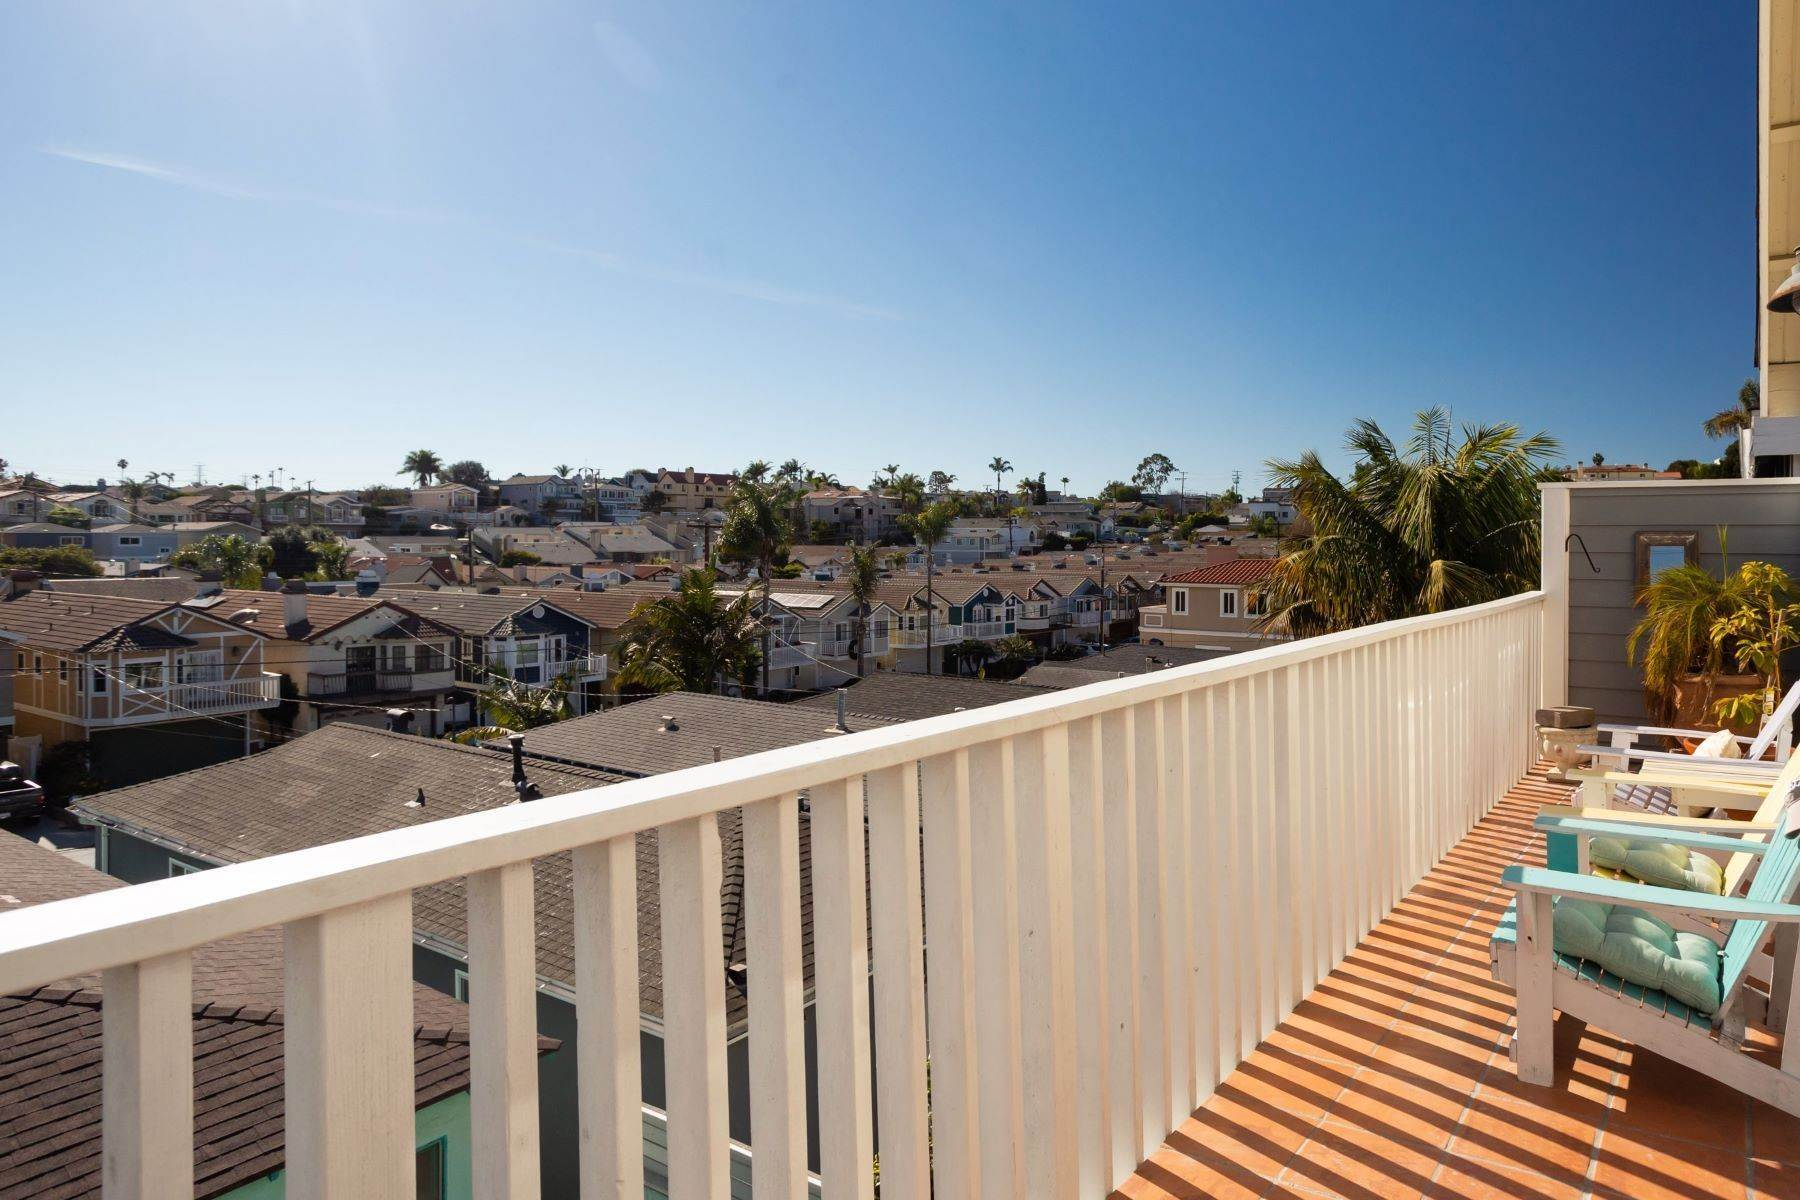 Single Family Homes for Sale at 1620 Speyer Lane, Redondo Beach, CA 90278 1620 Speyer Lane Redondo Beach, California 90278 United States